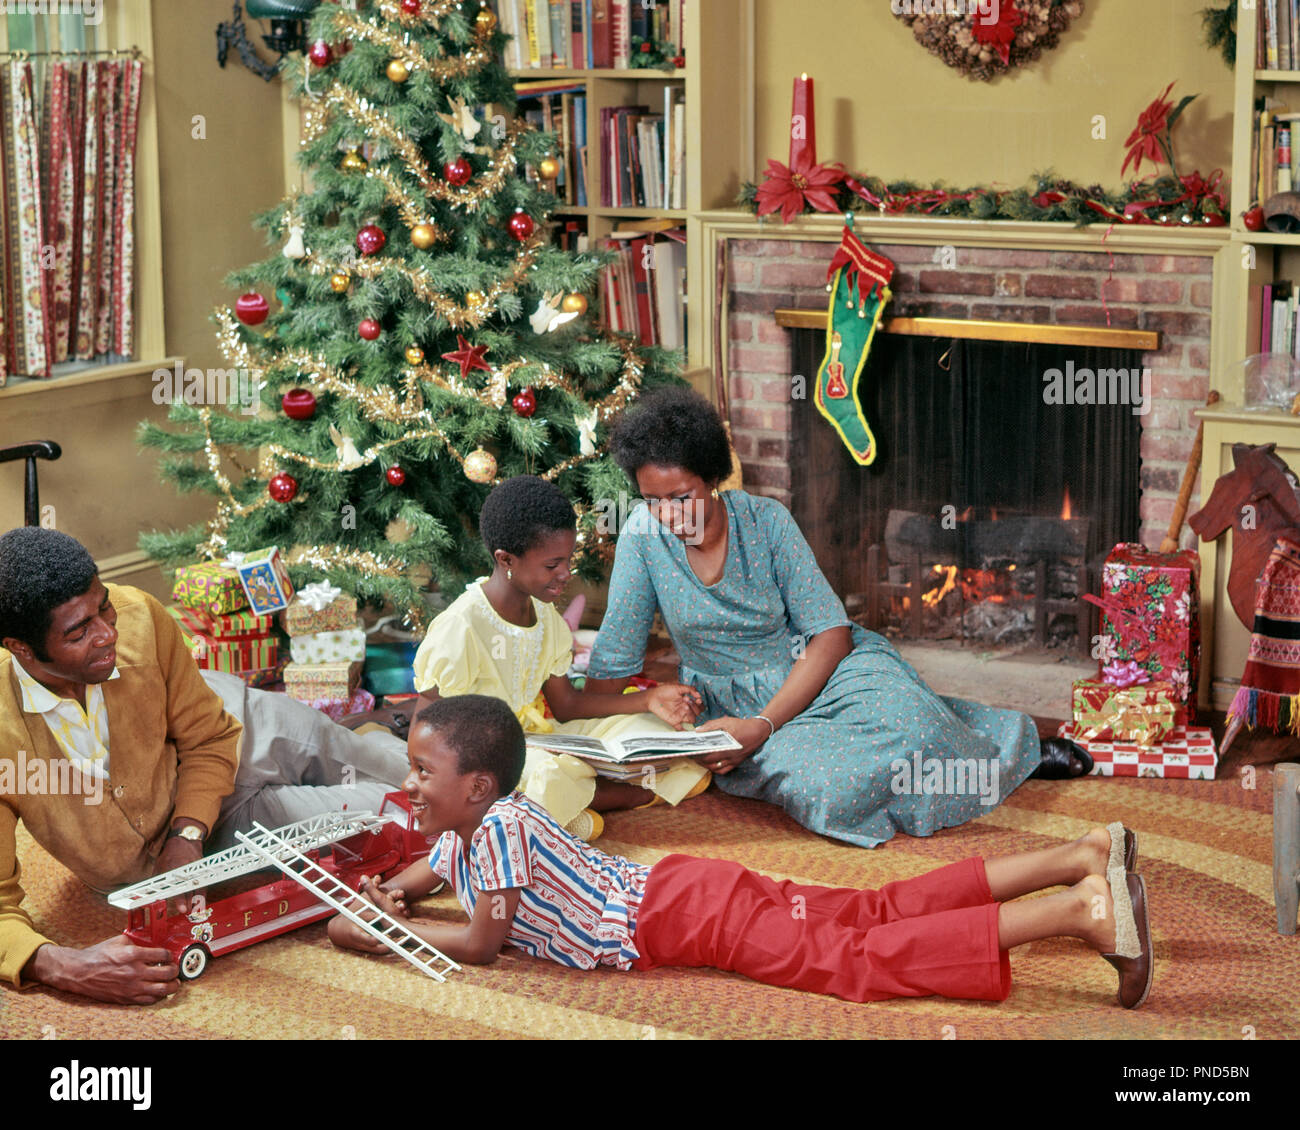 1970s AFRICAN AMERICAN FAMILY OF FOUR ON LIVING ROOM FLOOR PLAYING WITH CHRISTMAS TOYS AND PRESENTS - kx8042 PHT001 HARS COUPLES HUSBAND 3 FIREPLACE DAD FOUR MOM INDOORS FLOOR NOSTALGIC PAIR 4 SUBURBAN XMAS COLOR RELATIONSHIP MOTHERS OLD TIME NOSTALGIA OLD FASHION 1 JUVENILE STOCKING PEACE WREATH SONS FAMILIES JOY LIFESTYLE CELEBRATION FEMALES MARRIED SPOUSE HUSBANDS GROWNUP HOME LIFE COPY SPACE FULL-LENGTH LADIES DAUGHTERS PERSONS INSPIRATION GROWN-UP CARING MALES GIFTS FATHERS WINTERTIME WINTER SEASON STRUCTURE HAPPINESS STRENGTH LIVING ROOM AFRICAN-AMERICAN CHOICE DADS EXCITEMENT TRIO - Stock Image